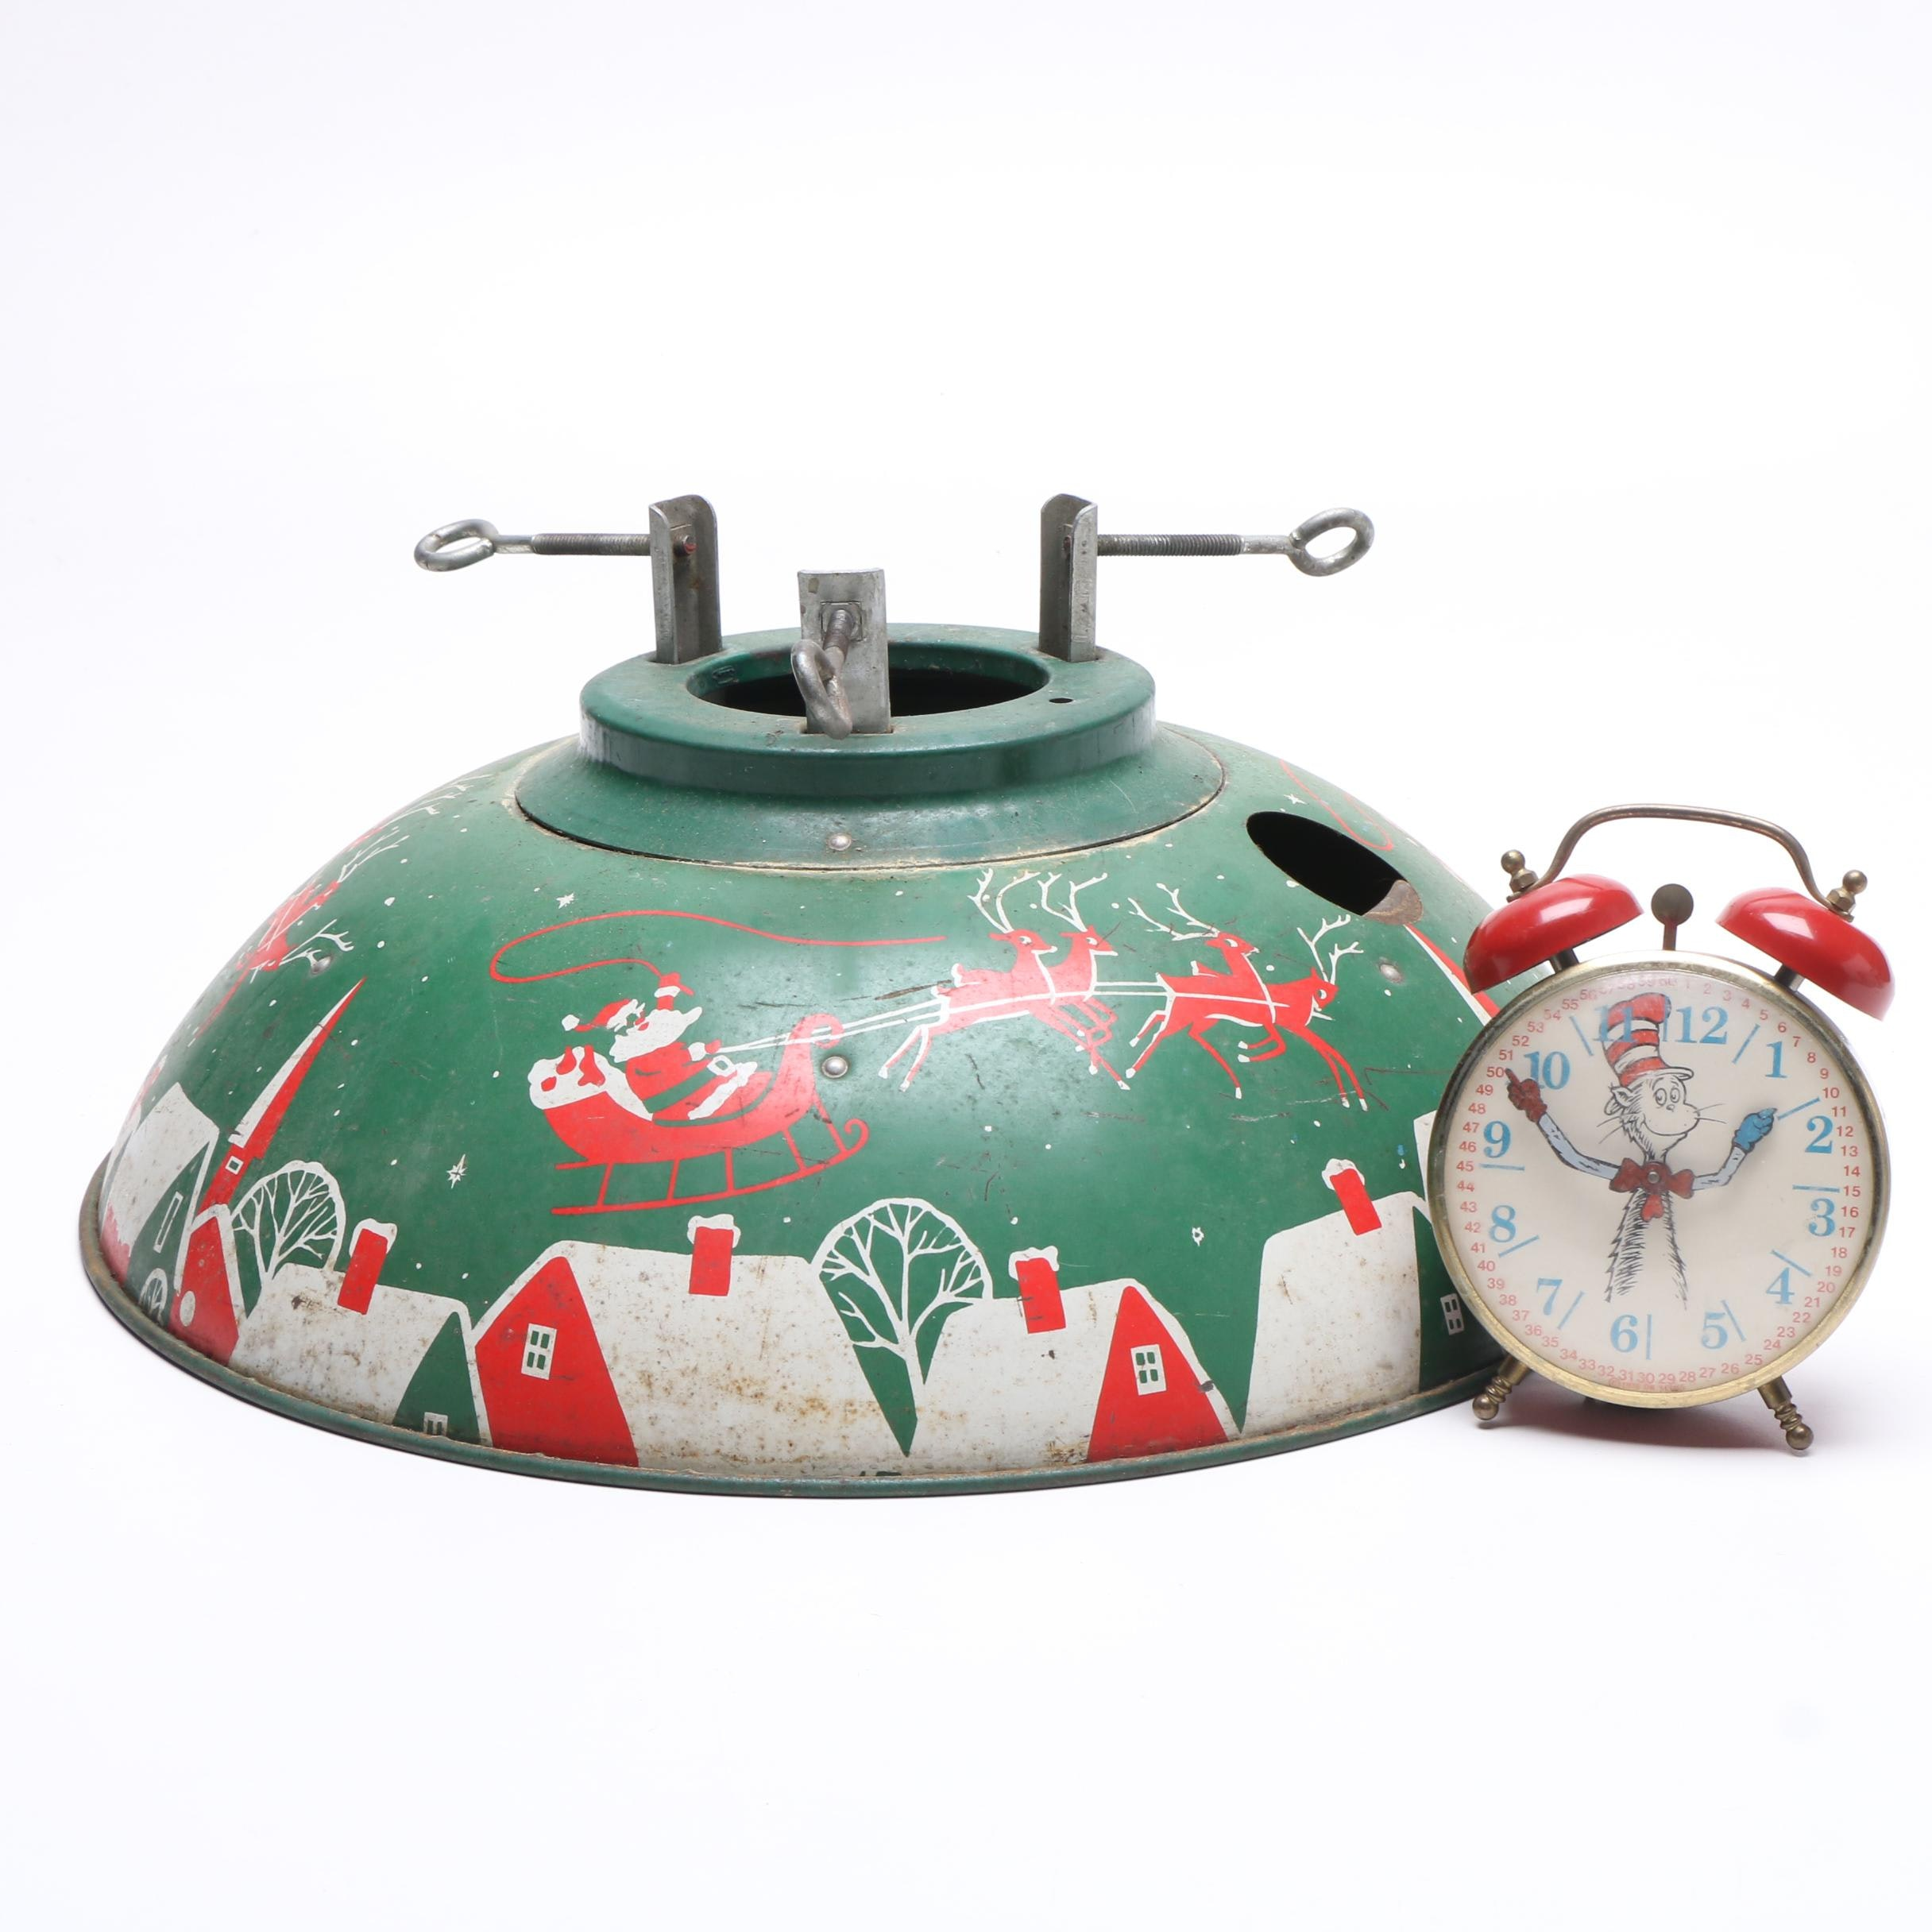 Dr. Seuss Alarm Clock with Christmas Tree Stand, Mid-Century